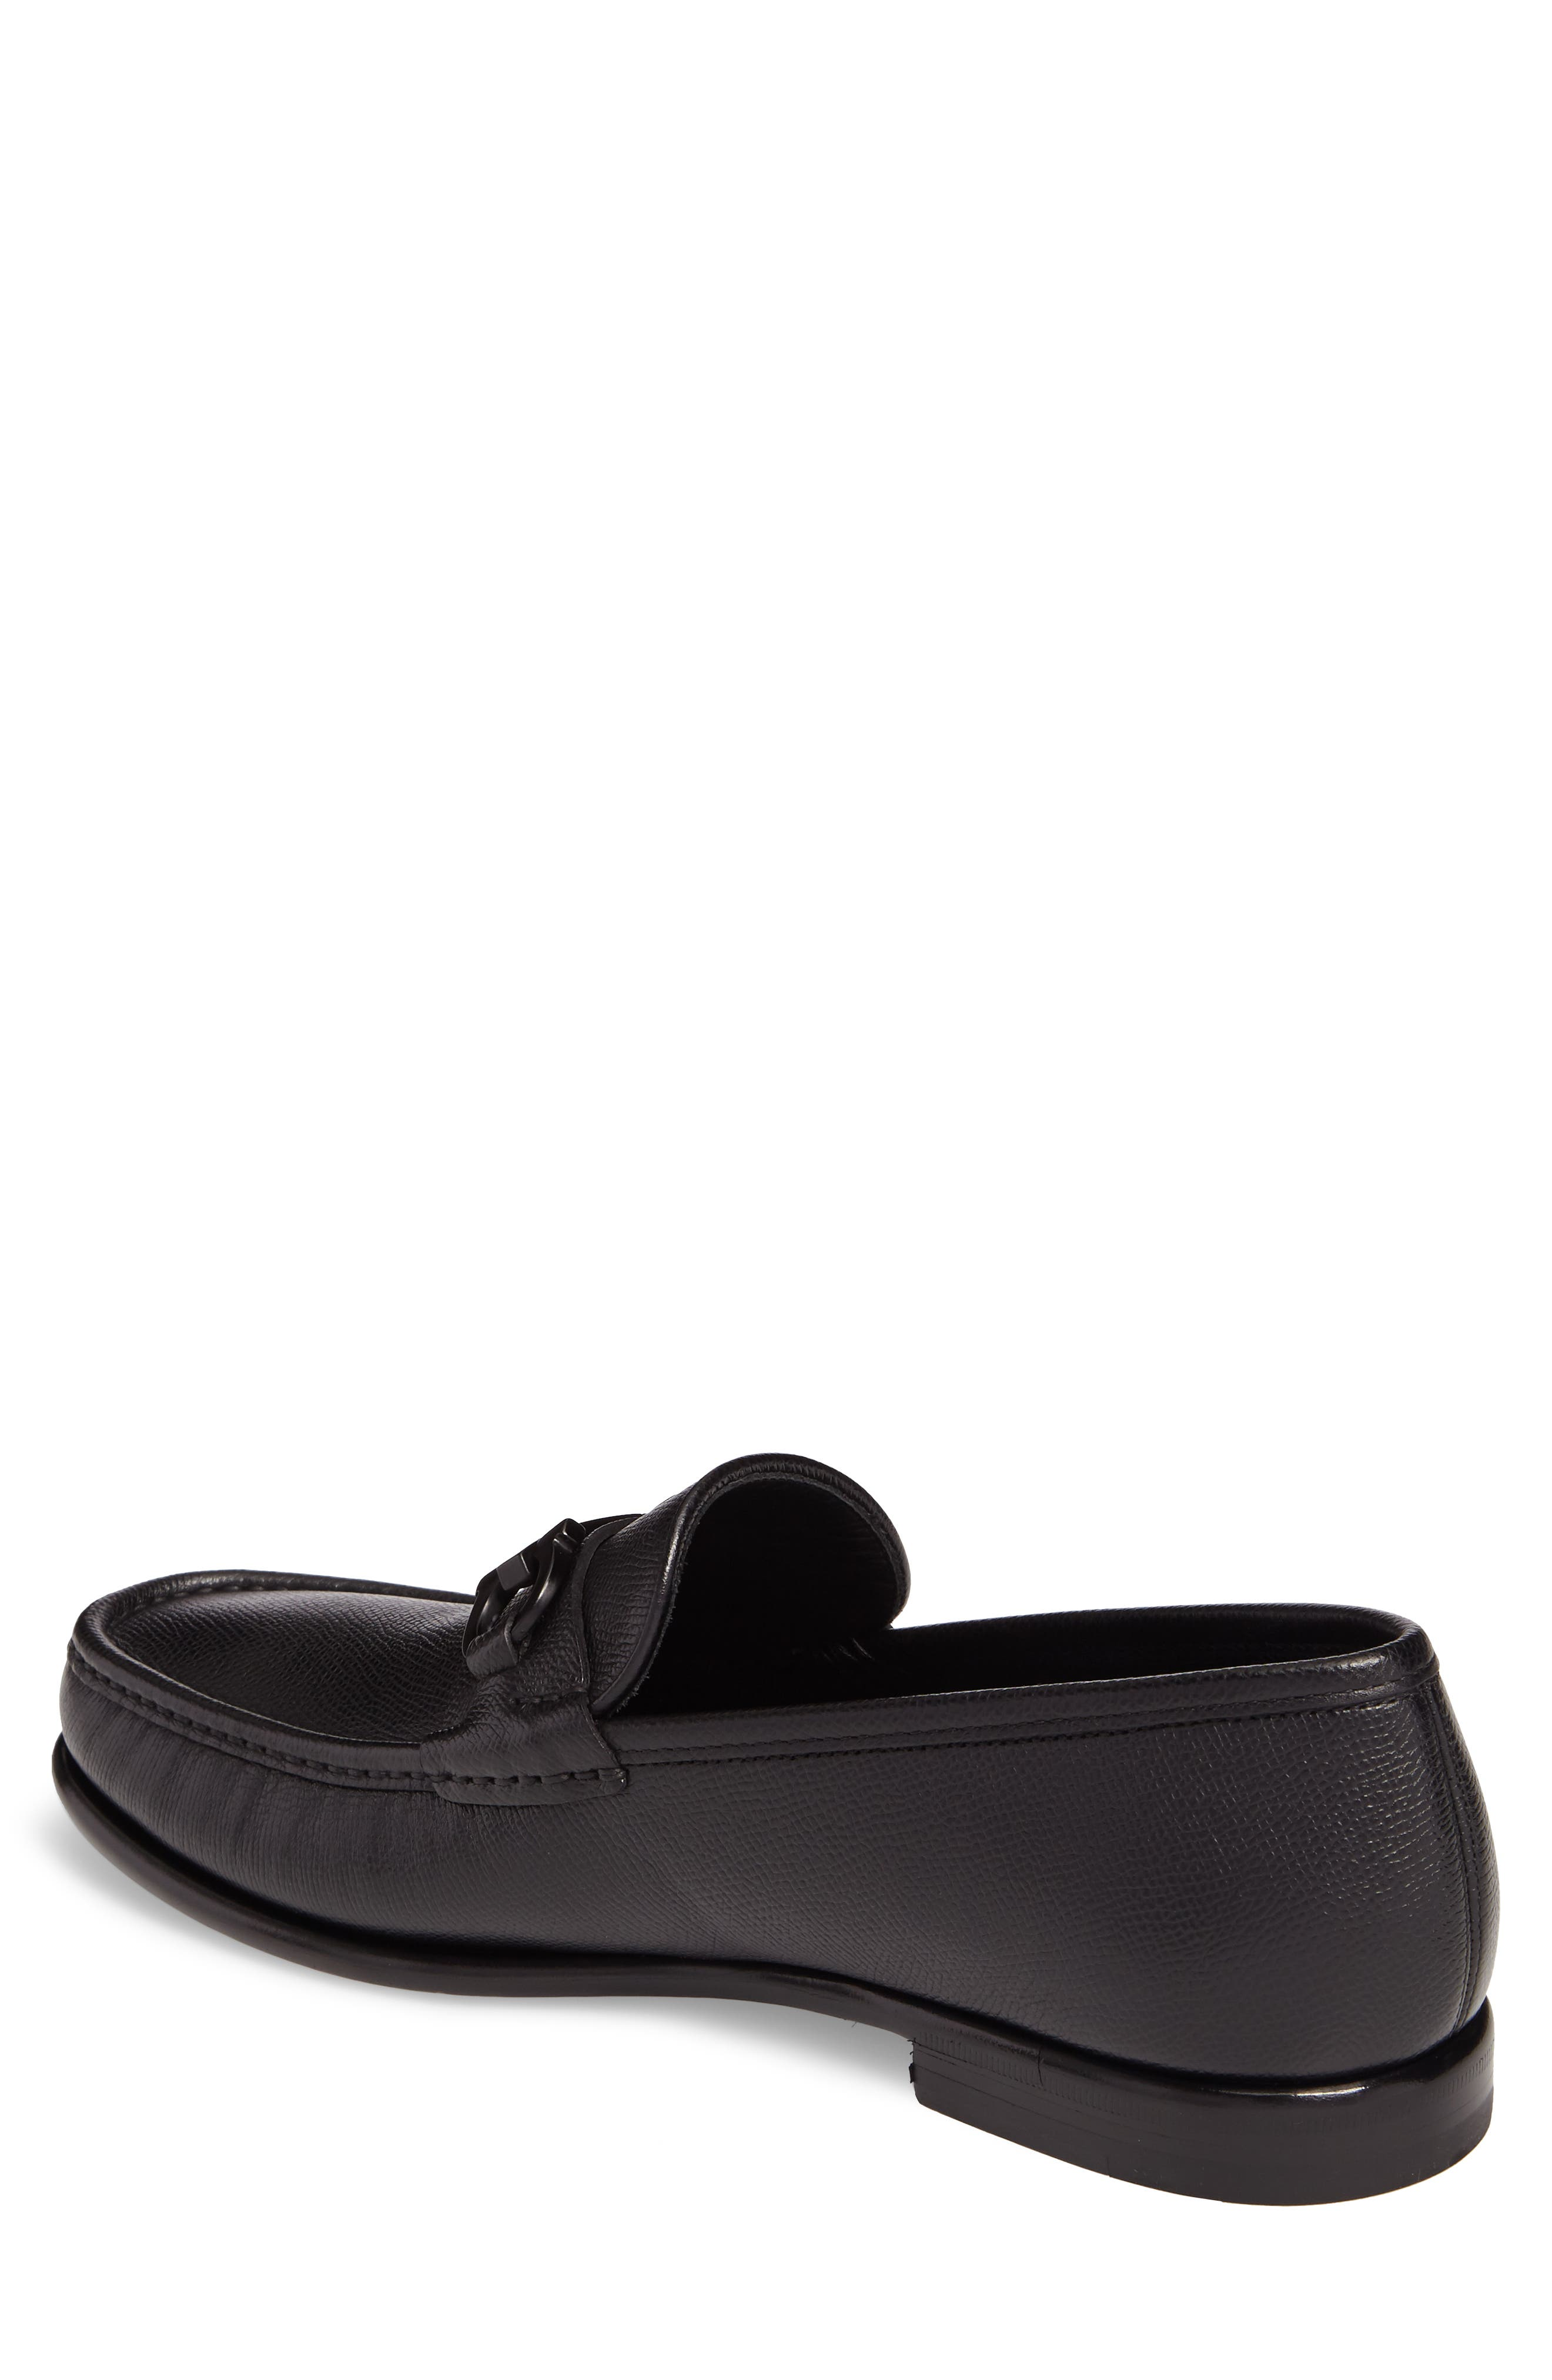 Crown Bit Loafer,                             Alternate thumbnail 2, color,                             Nero